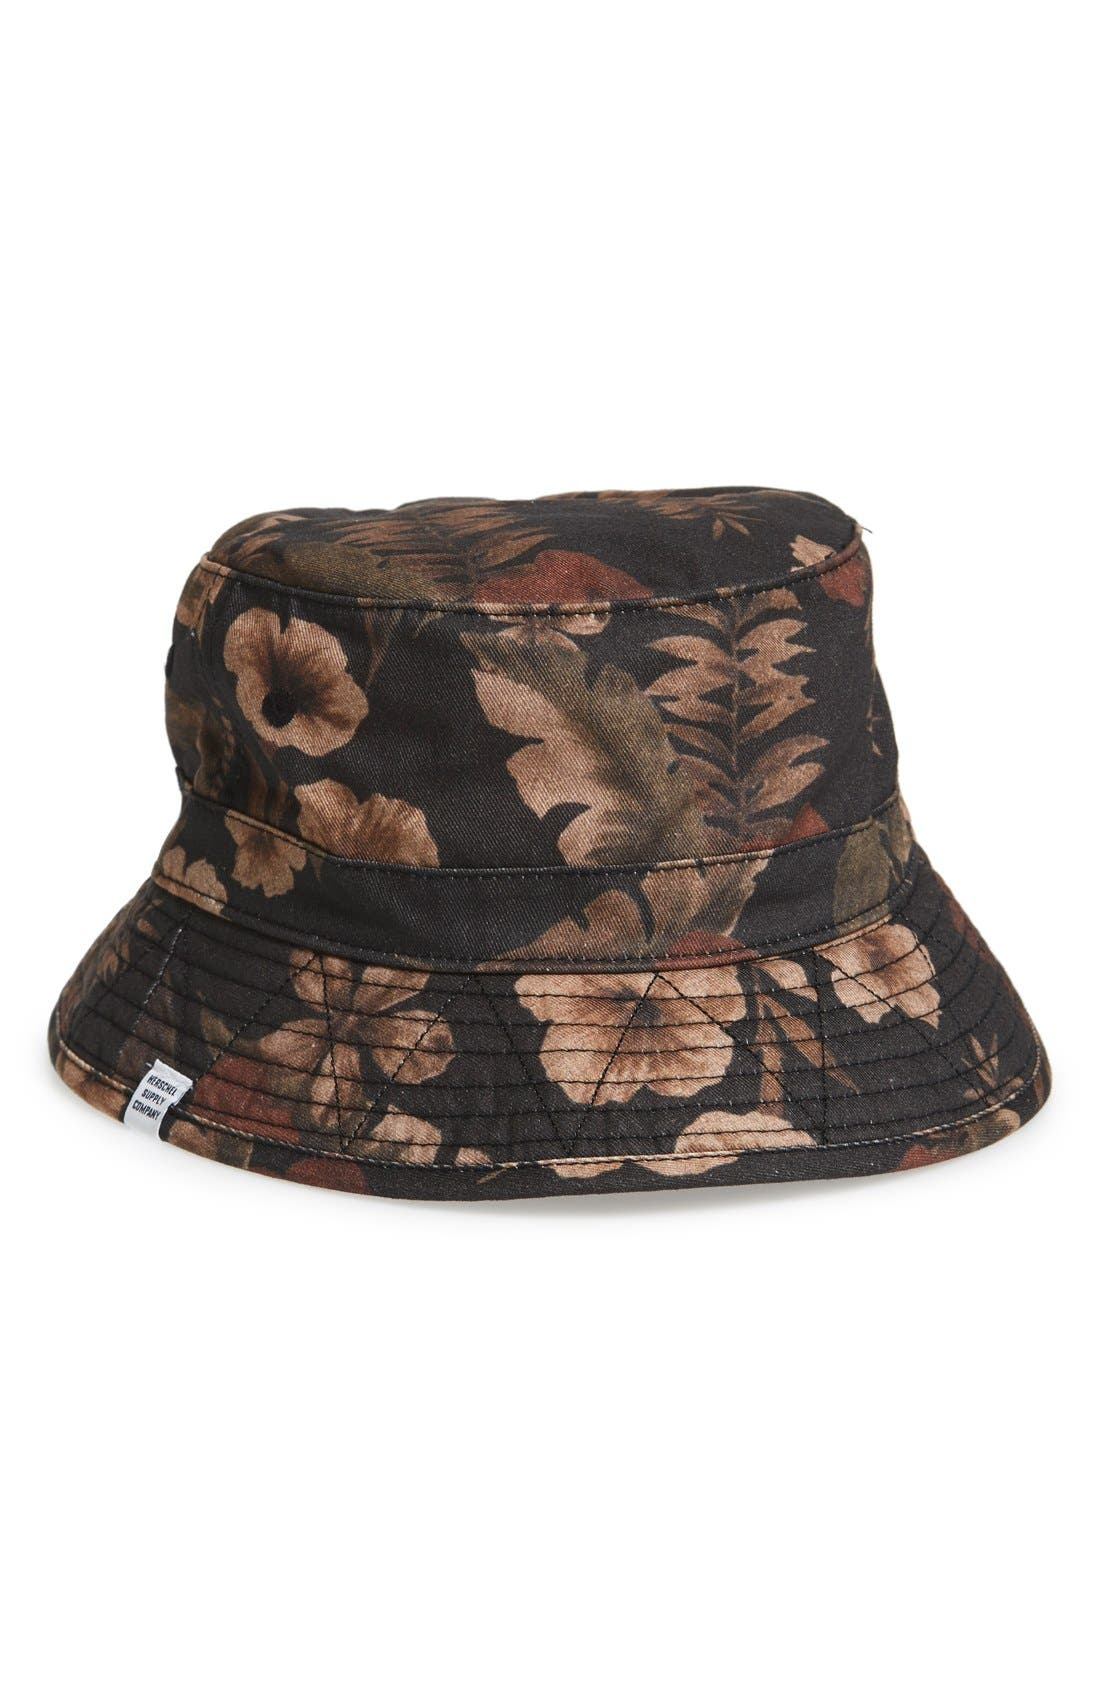 Main Image - Herschel Supply Co. 'Creek' Bucket Hat